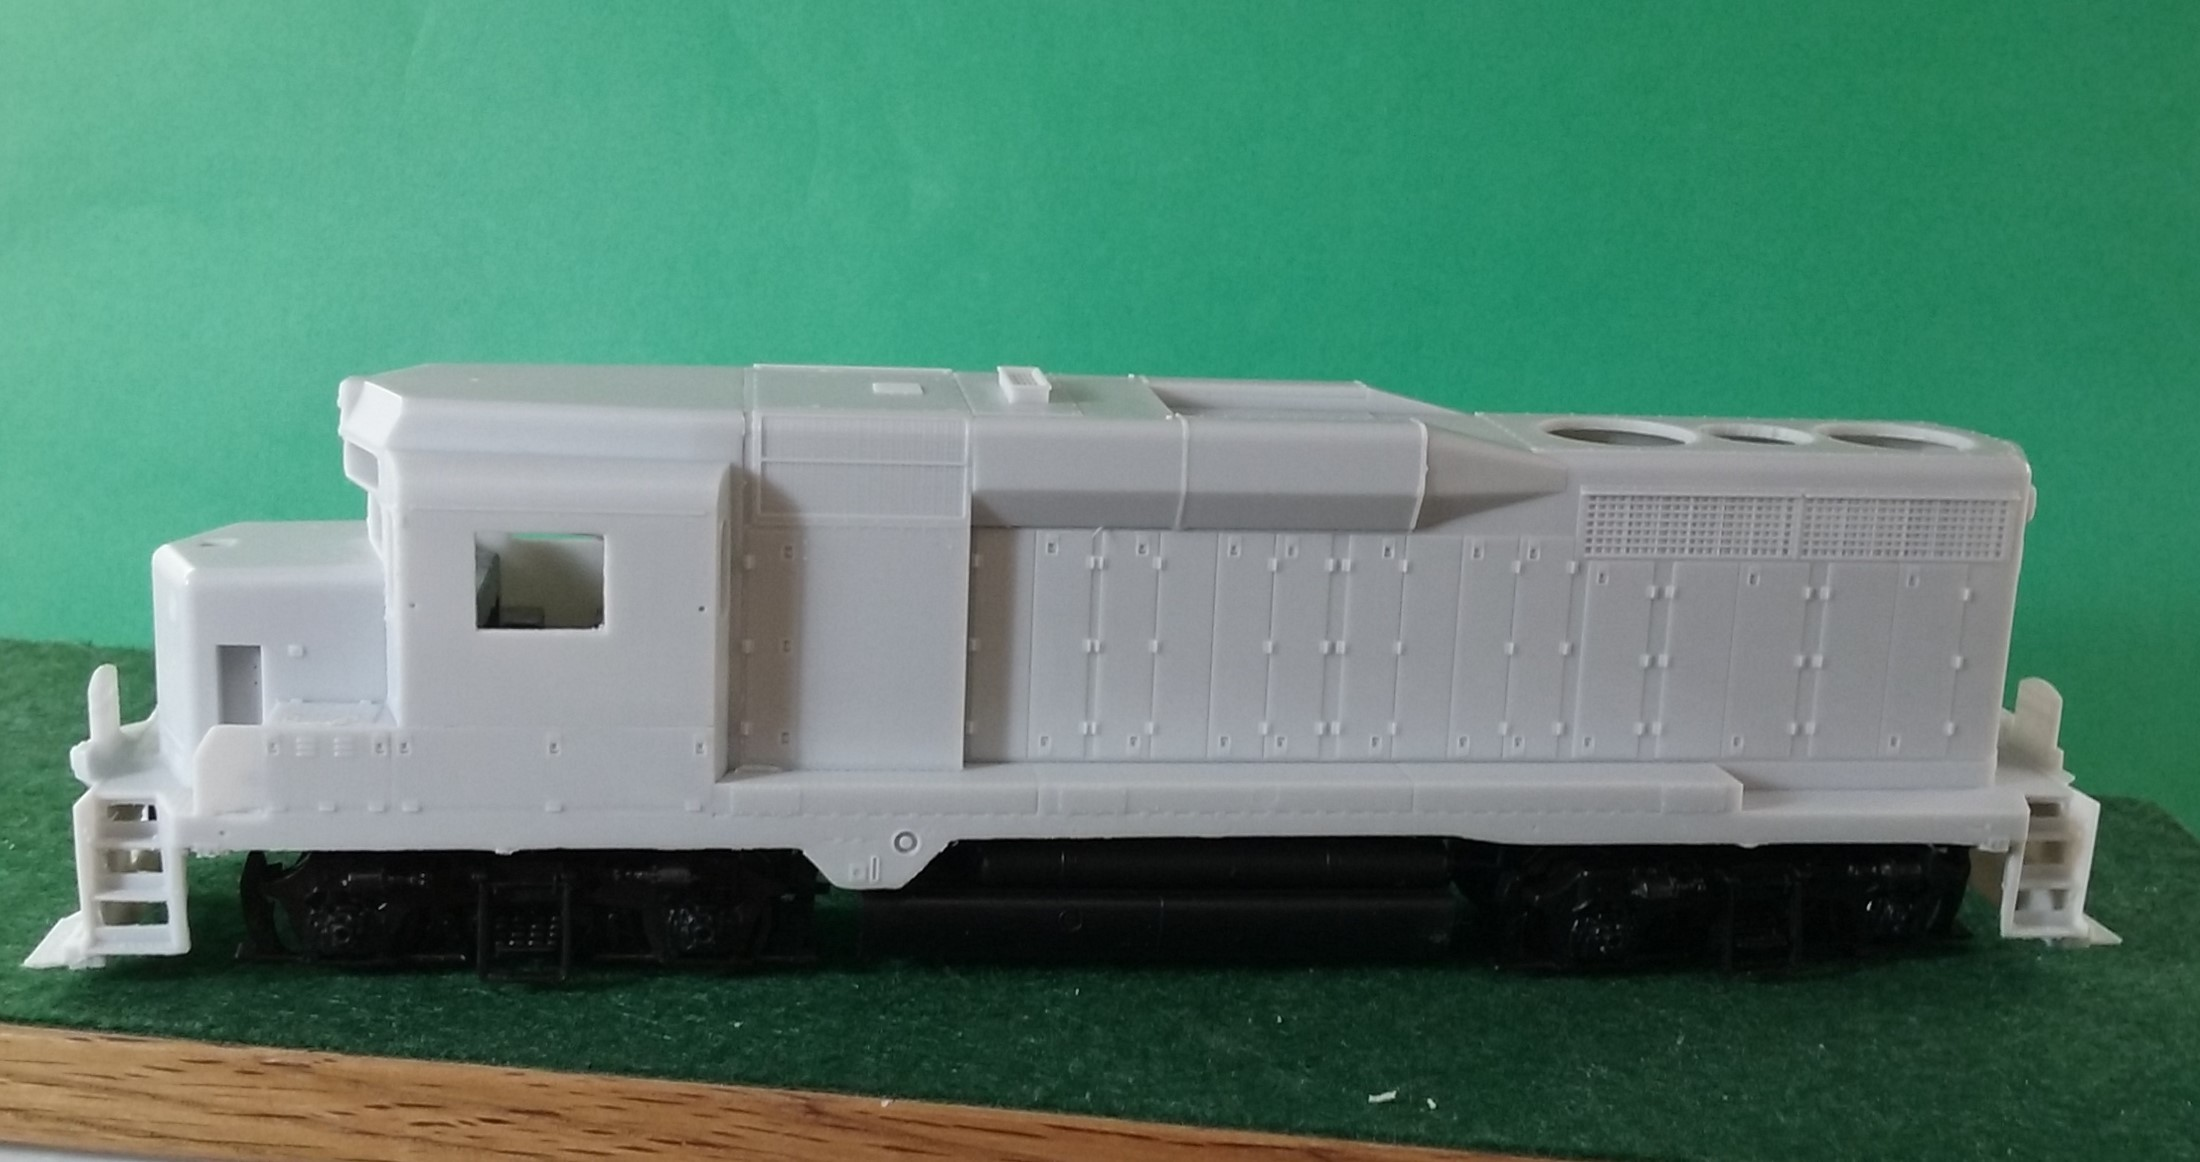 HO Scale CNW EMD GP30 Non Dynamic Locomotive Shell, by Pacific Northwest Resin HO231